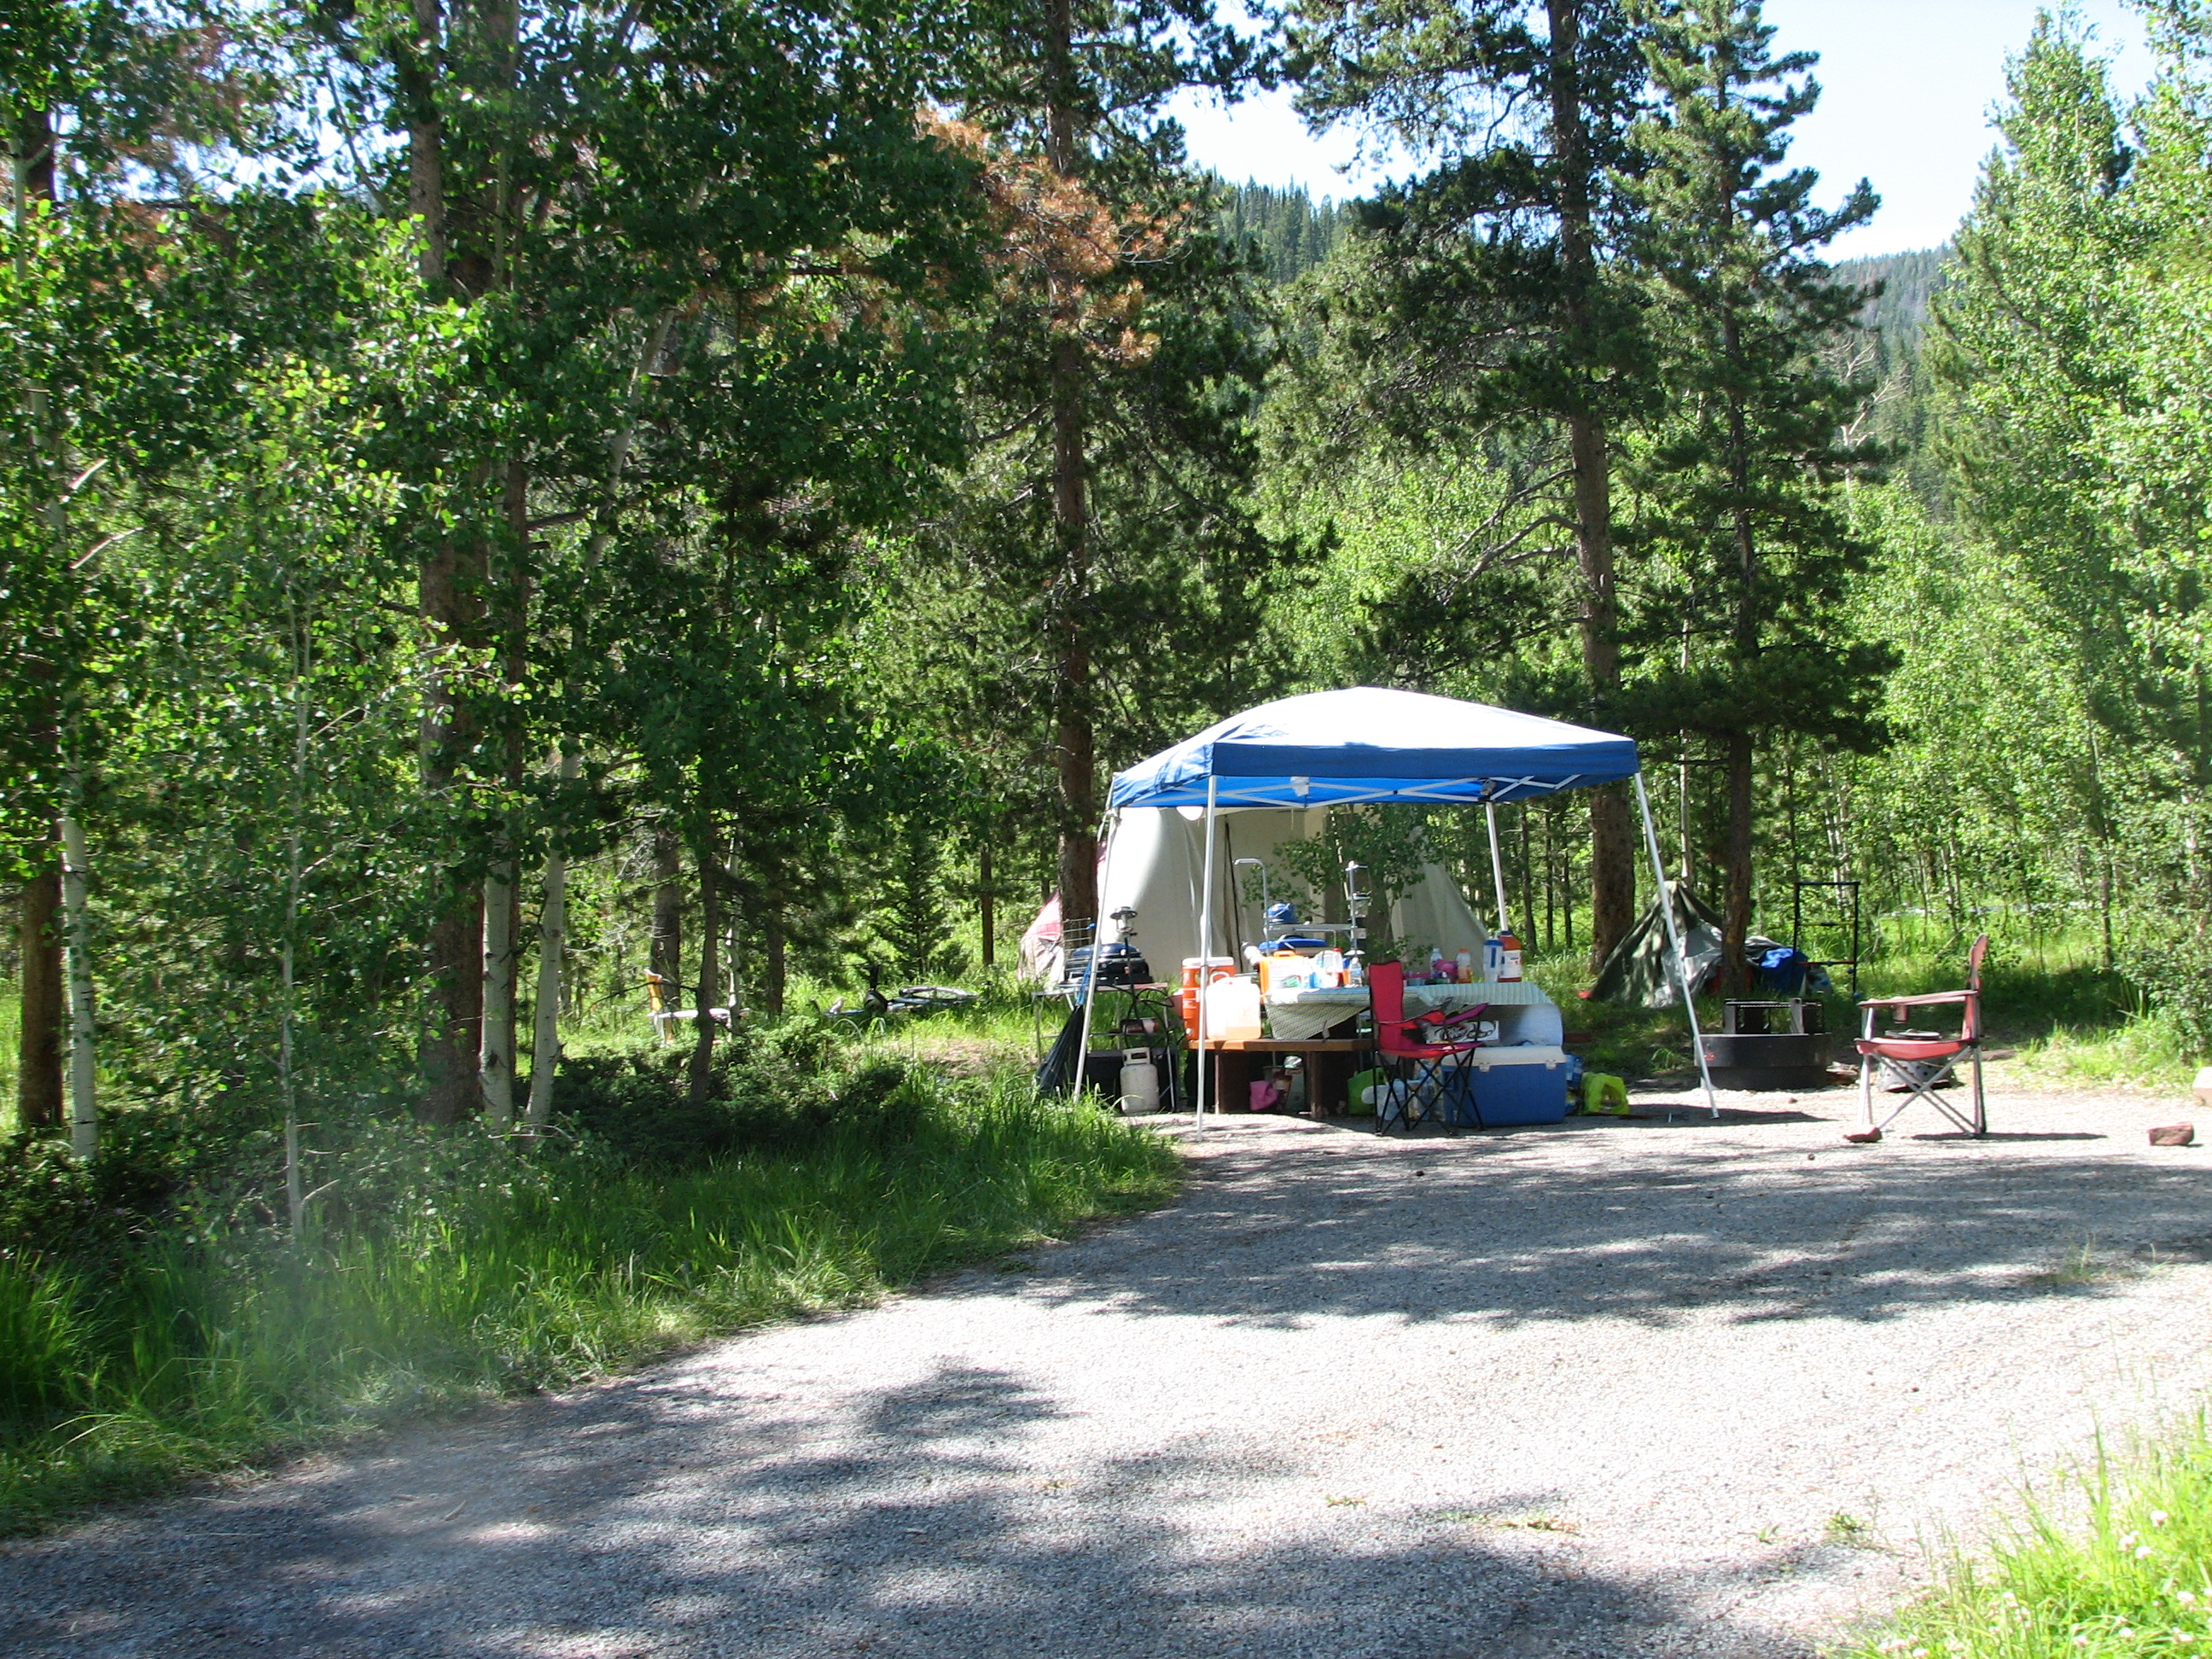 Photo of a site at the Lodgepole Campground.